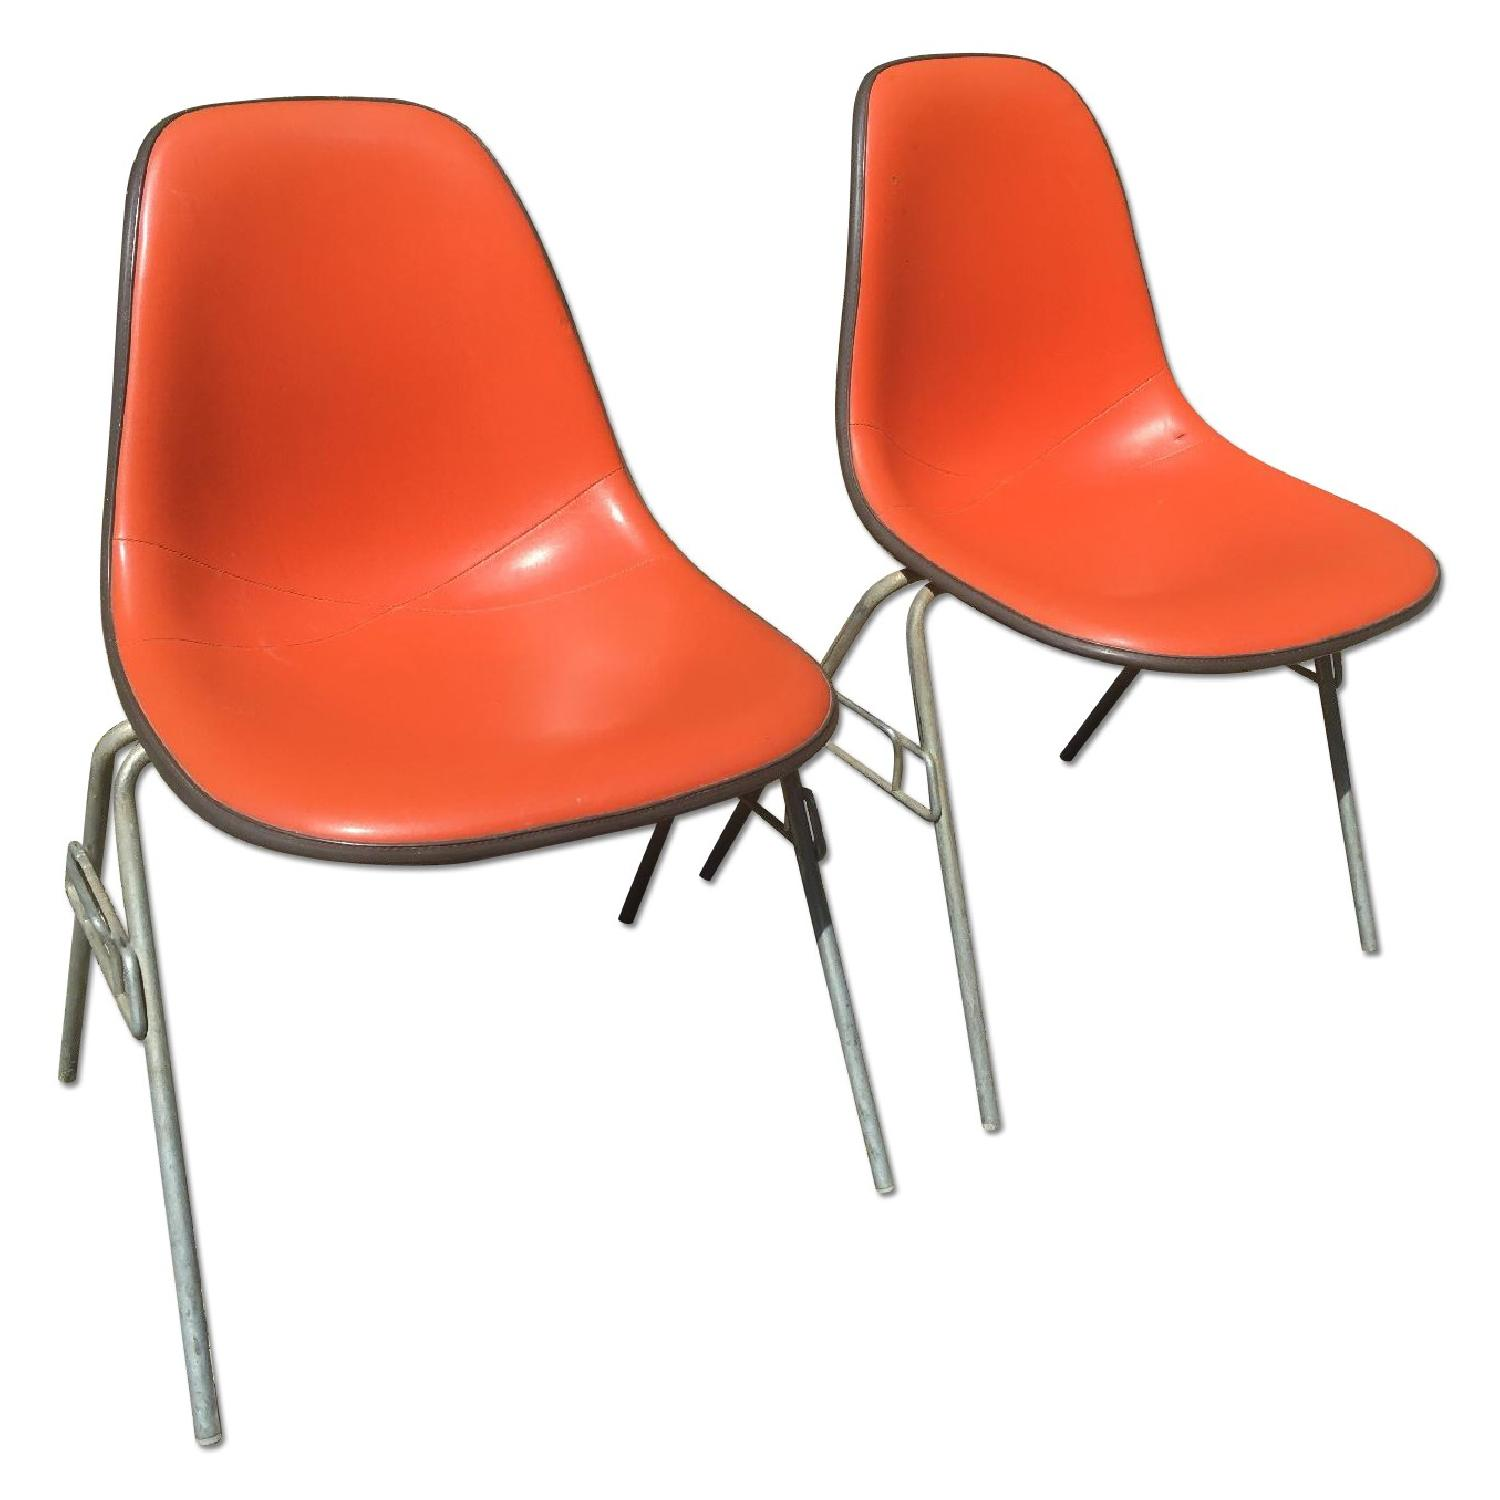 Herman Miller Eames Chairs Herman Miller Eames Shell Chairs Aptdeco